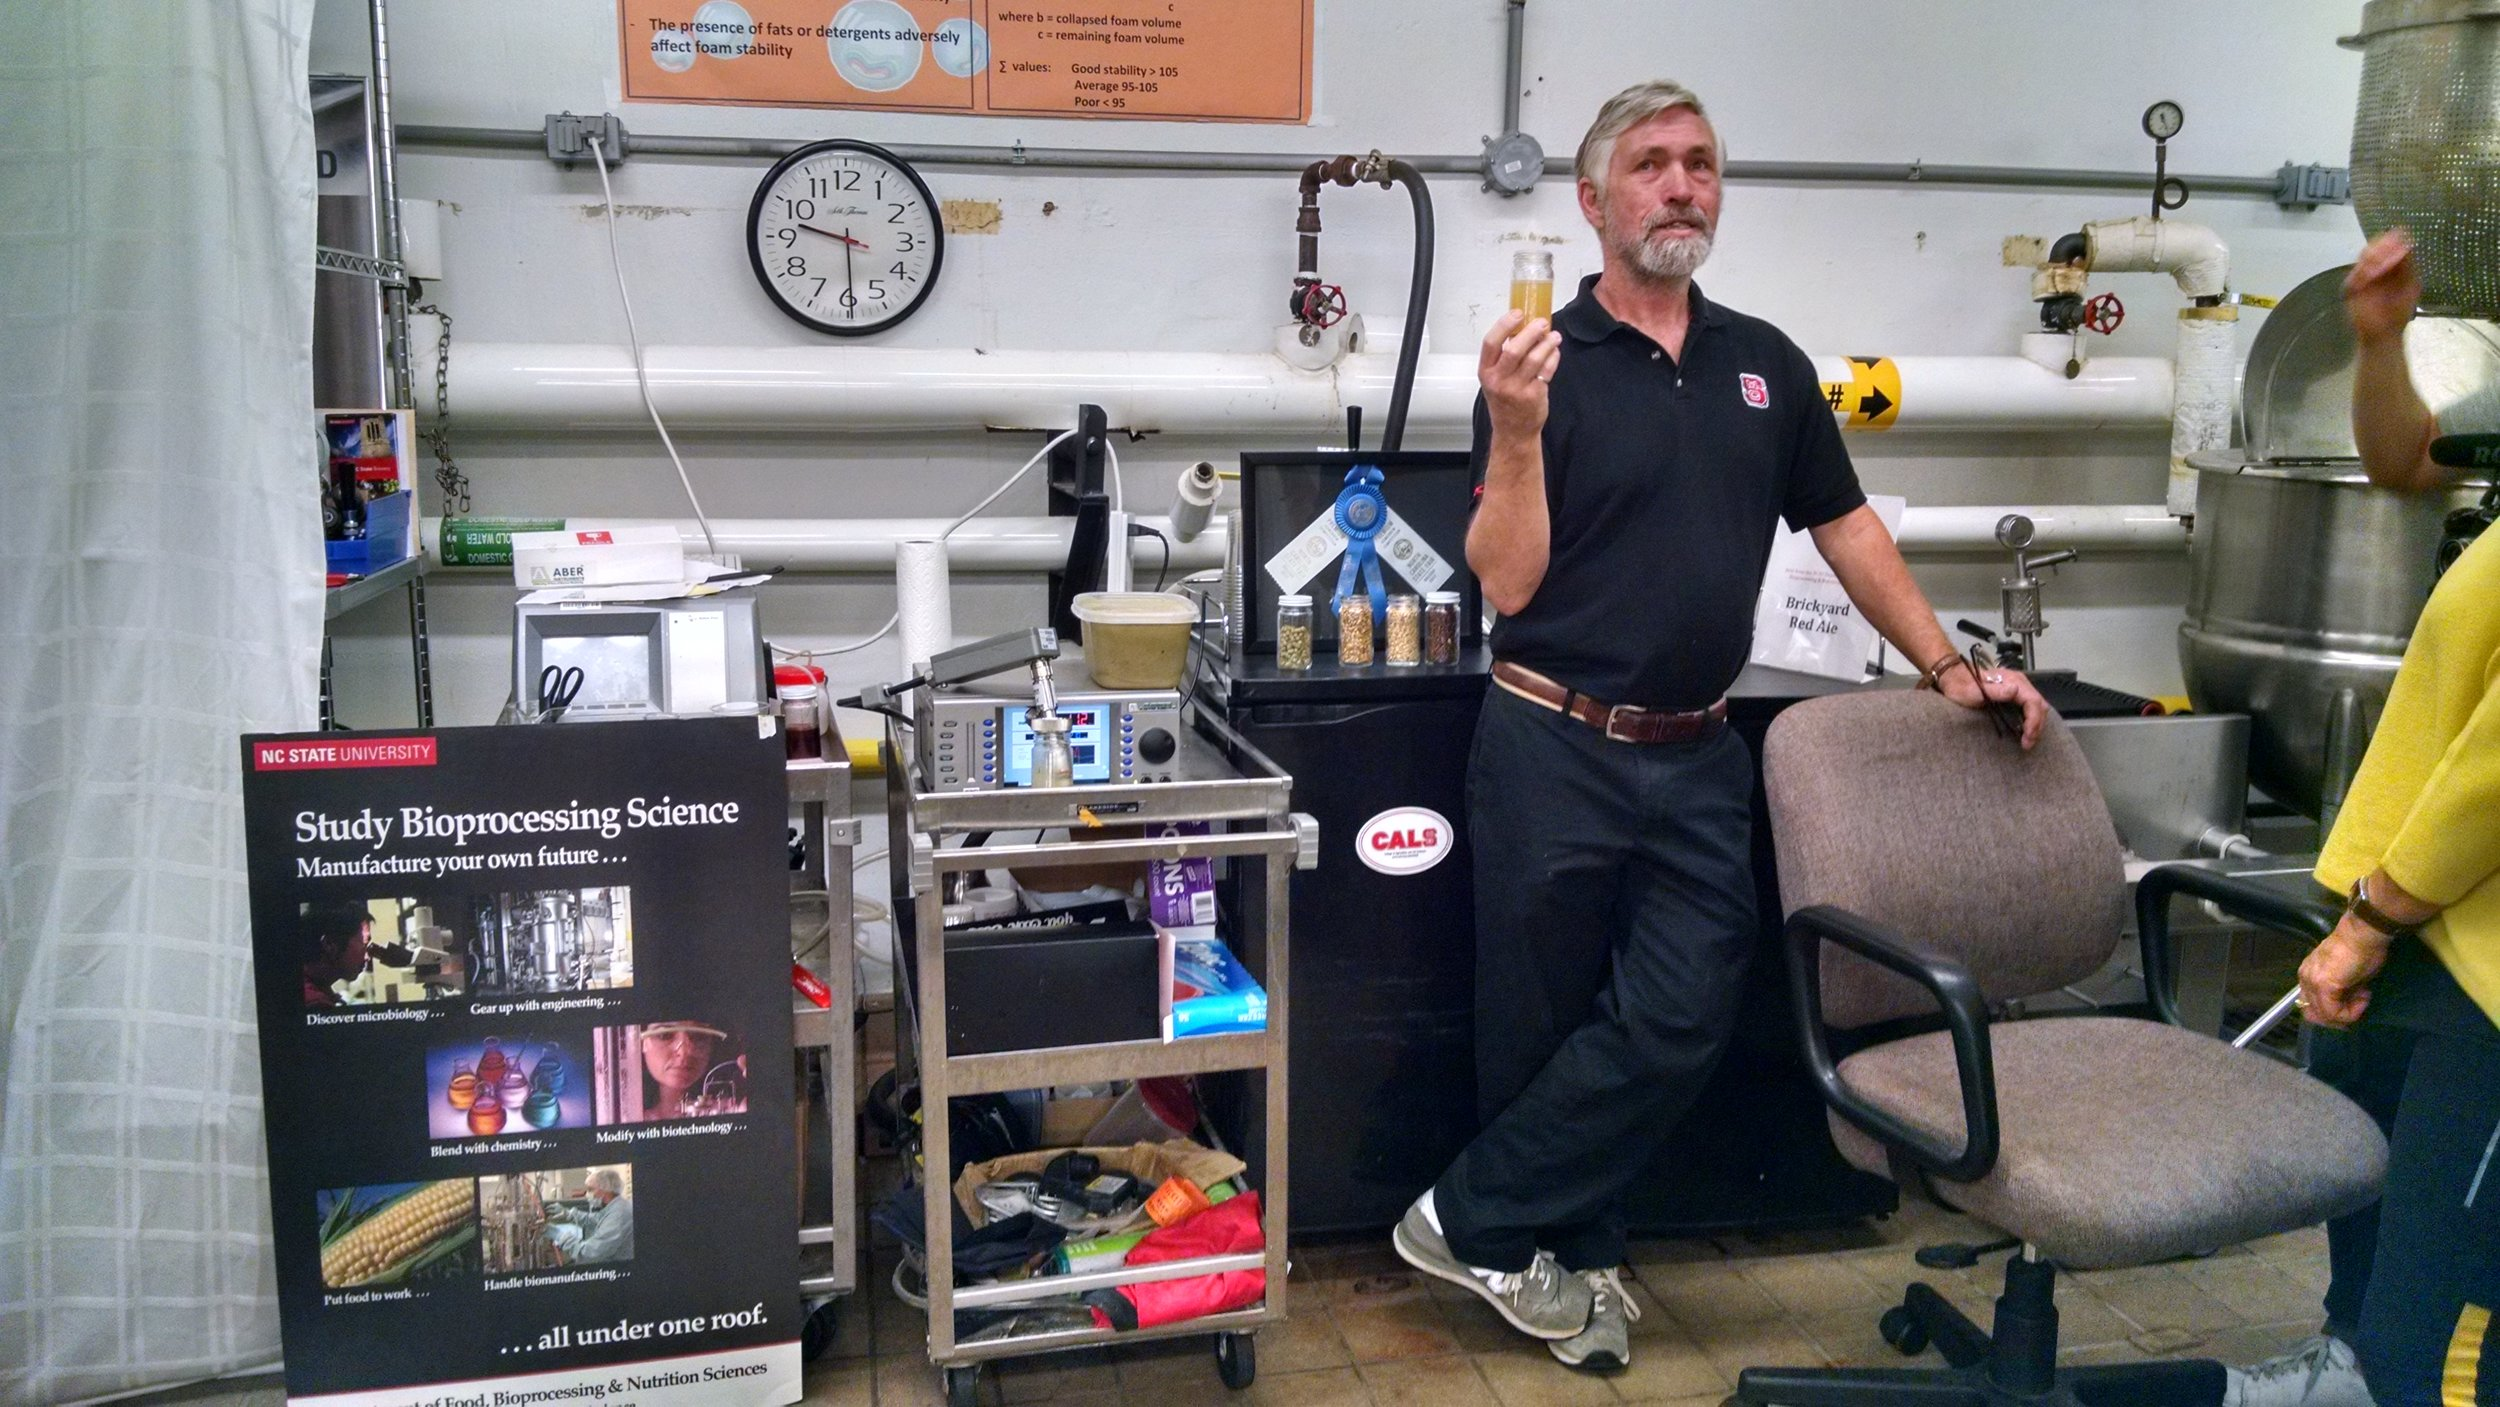 Co-inventor Dr. John Sheppard discussing the story of Wasp Beer with a documentary film crew.